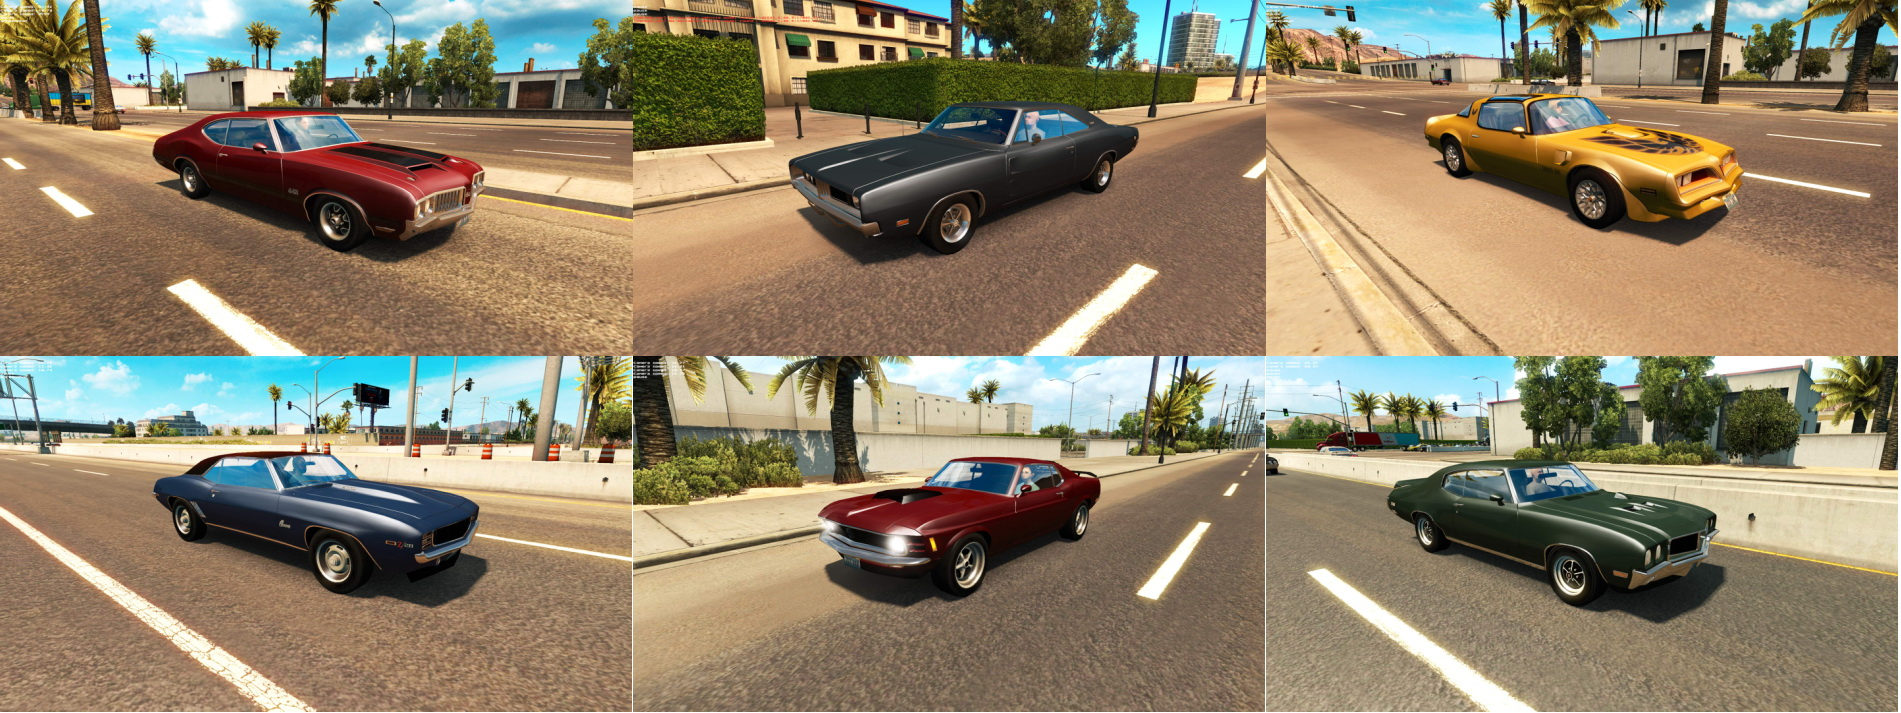 classic_ai_traffic_pack_by_Jazzycat_v1.0.jpg